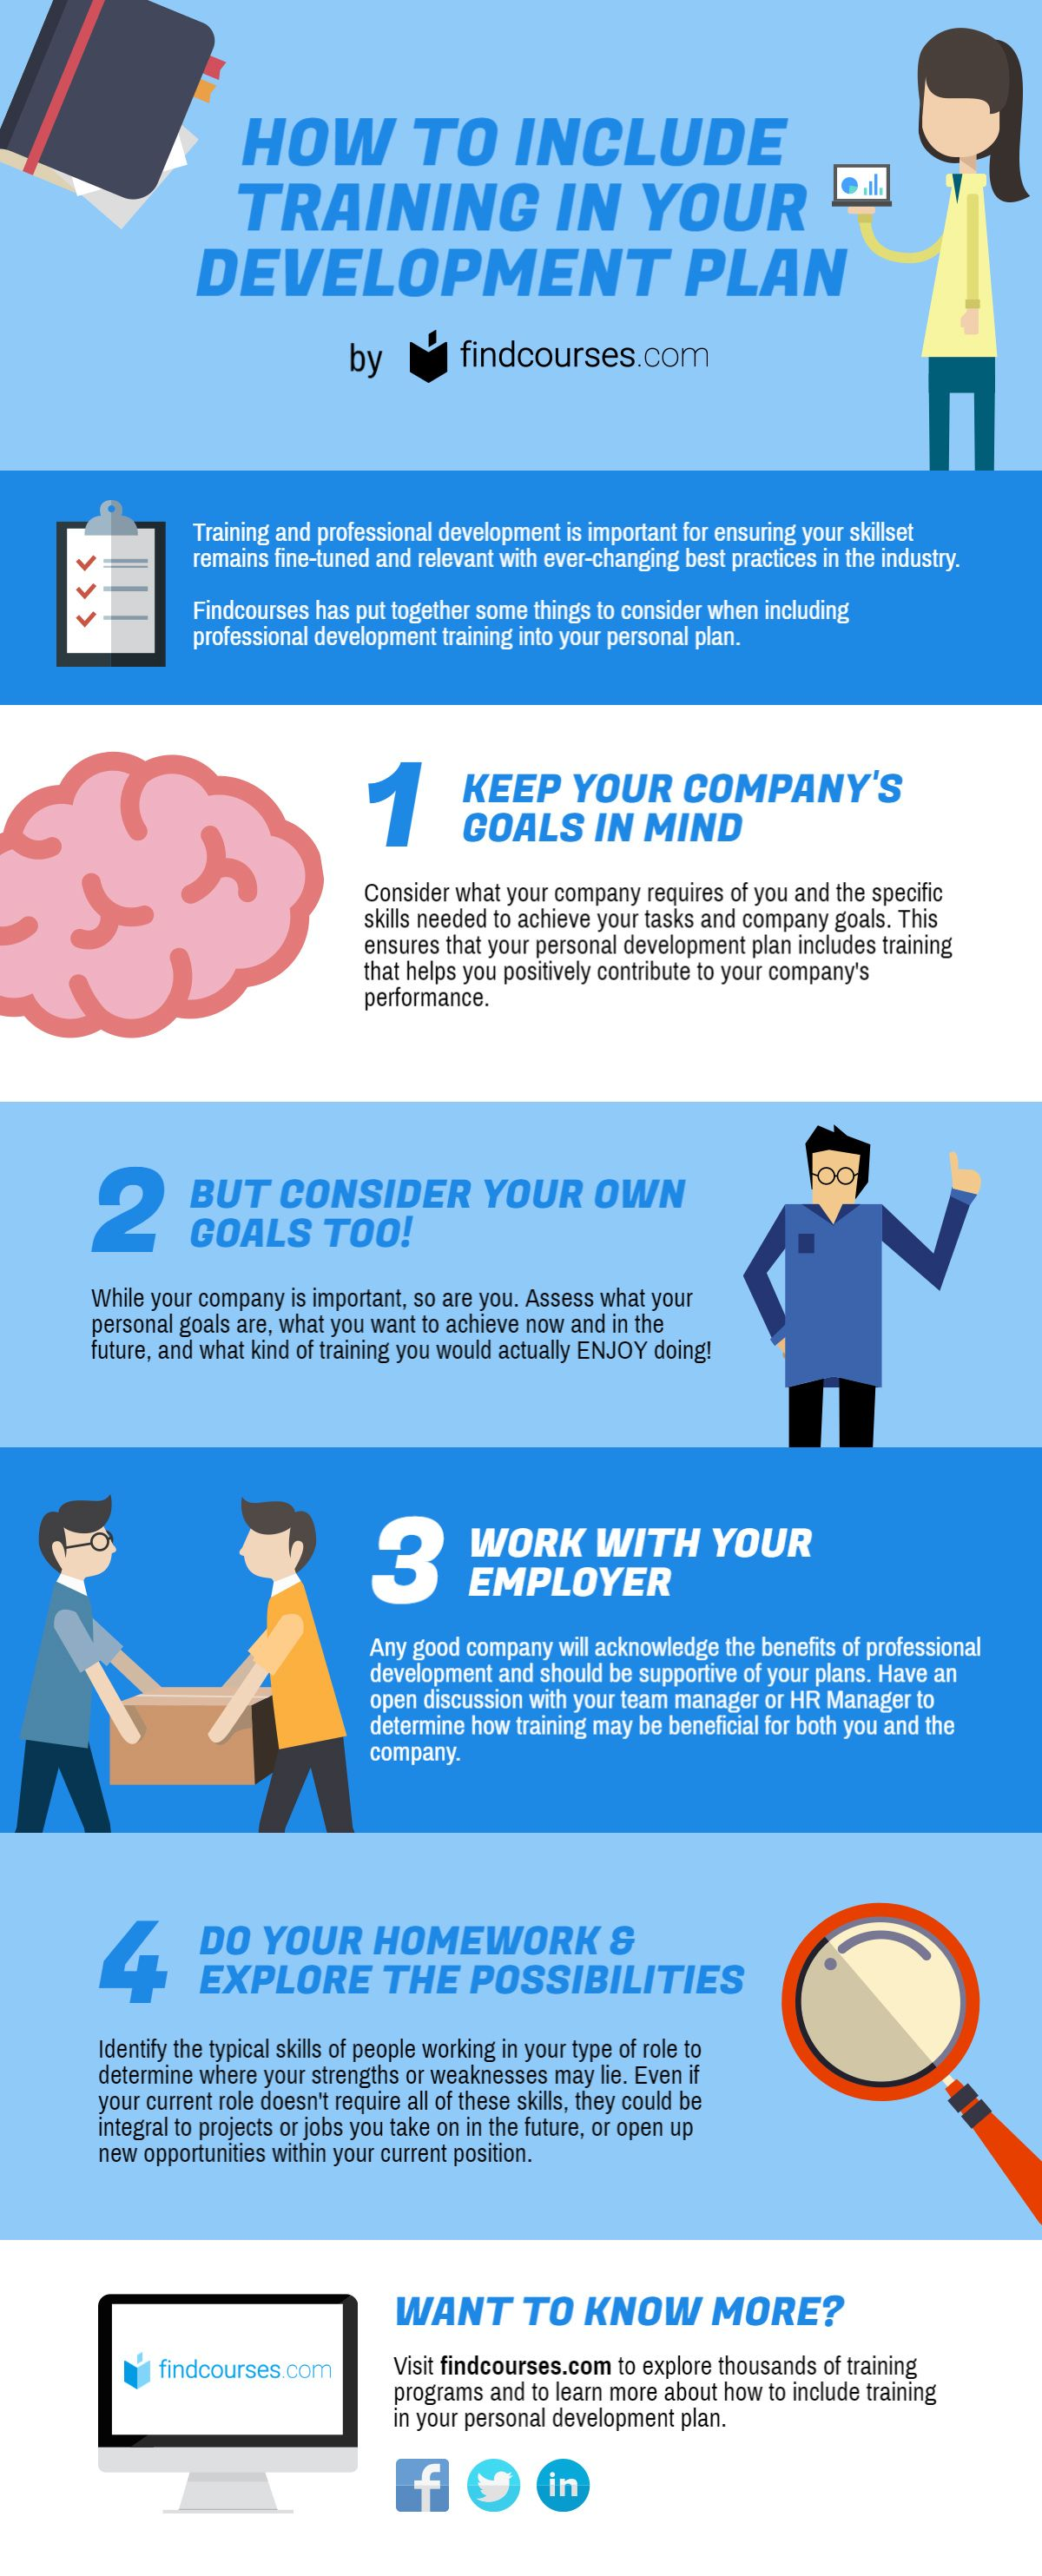 How To Include Training In Your Development Plan An Infographic By Findcourses Com How To Plan Infographic Personal Development Plan